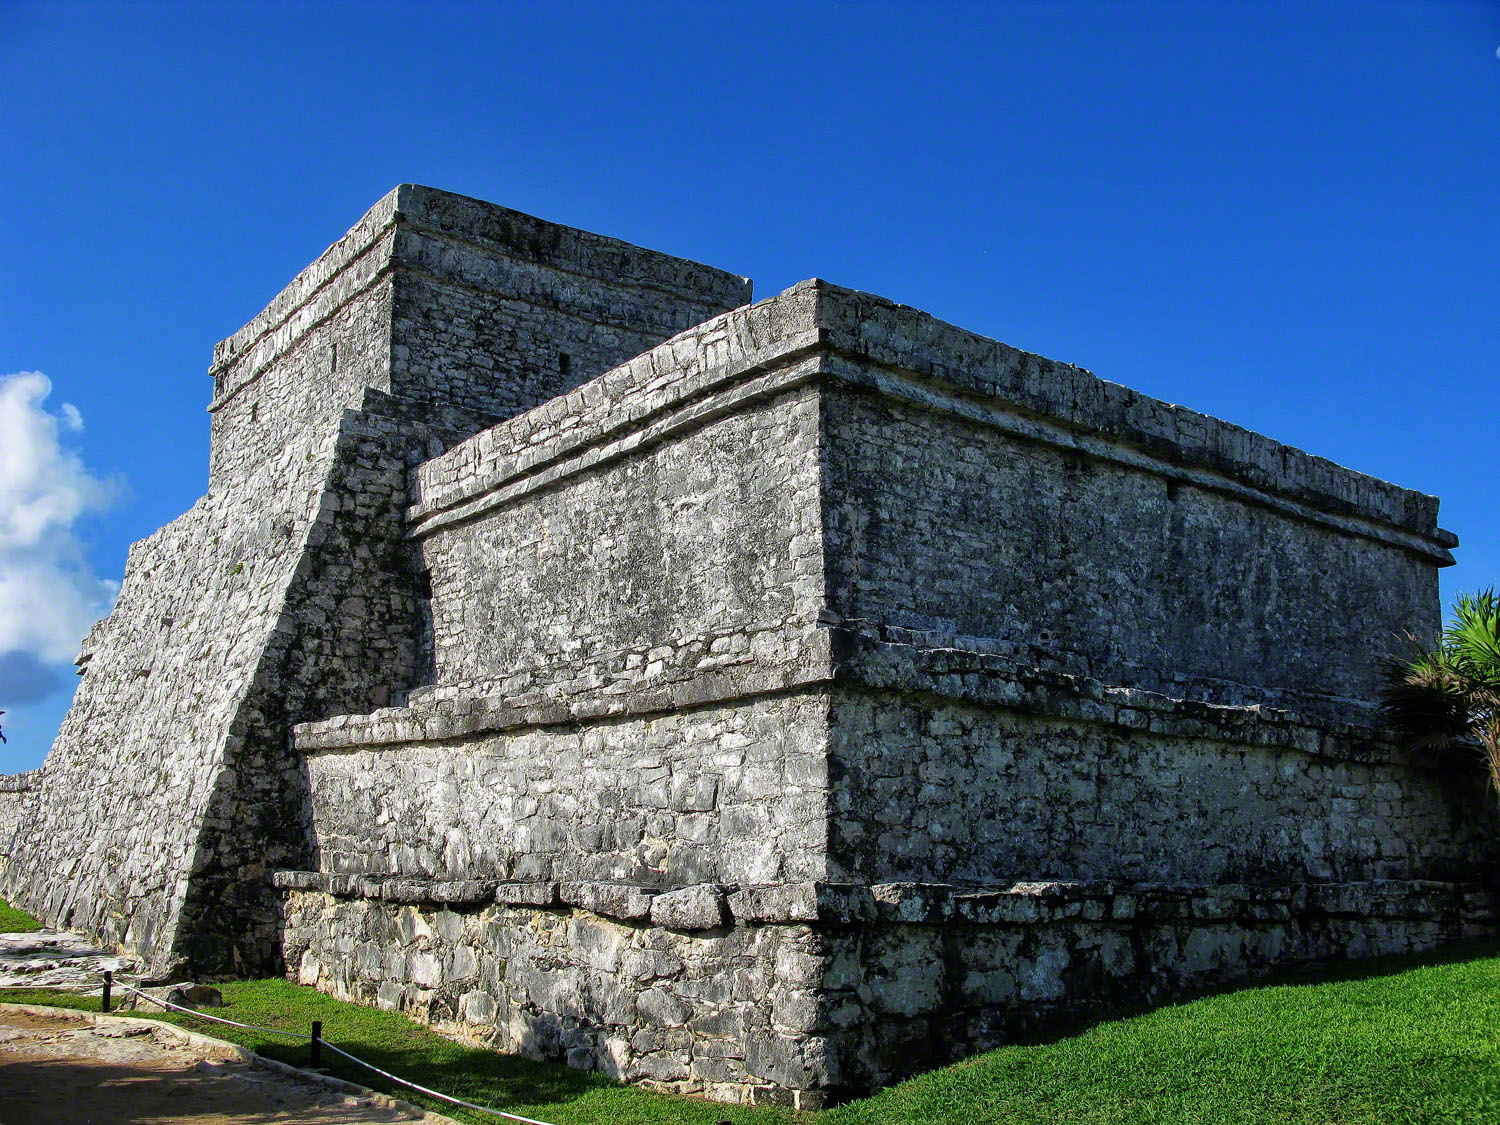 The Castle rises over 40 ft making it the most spectacular structure in Tulum.